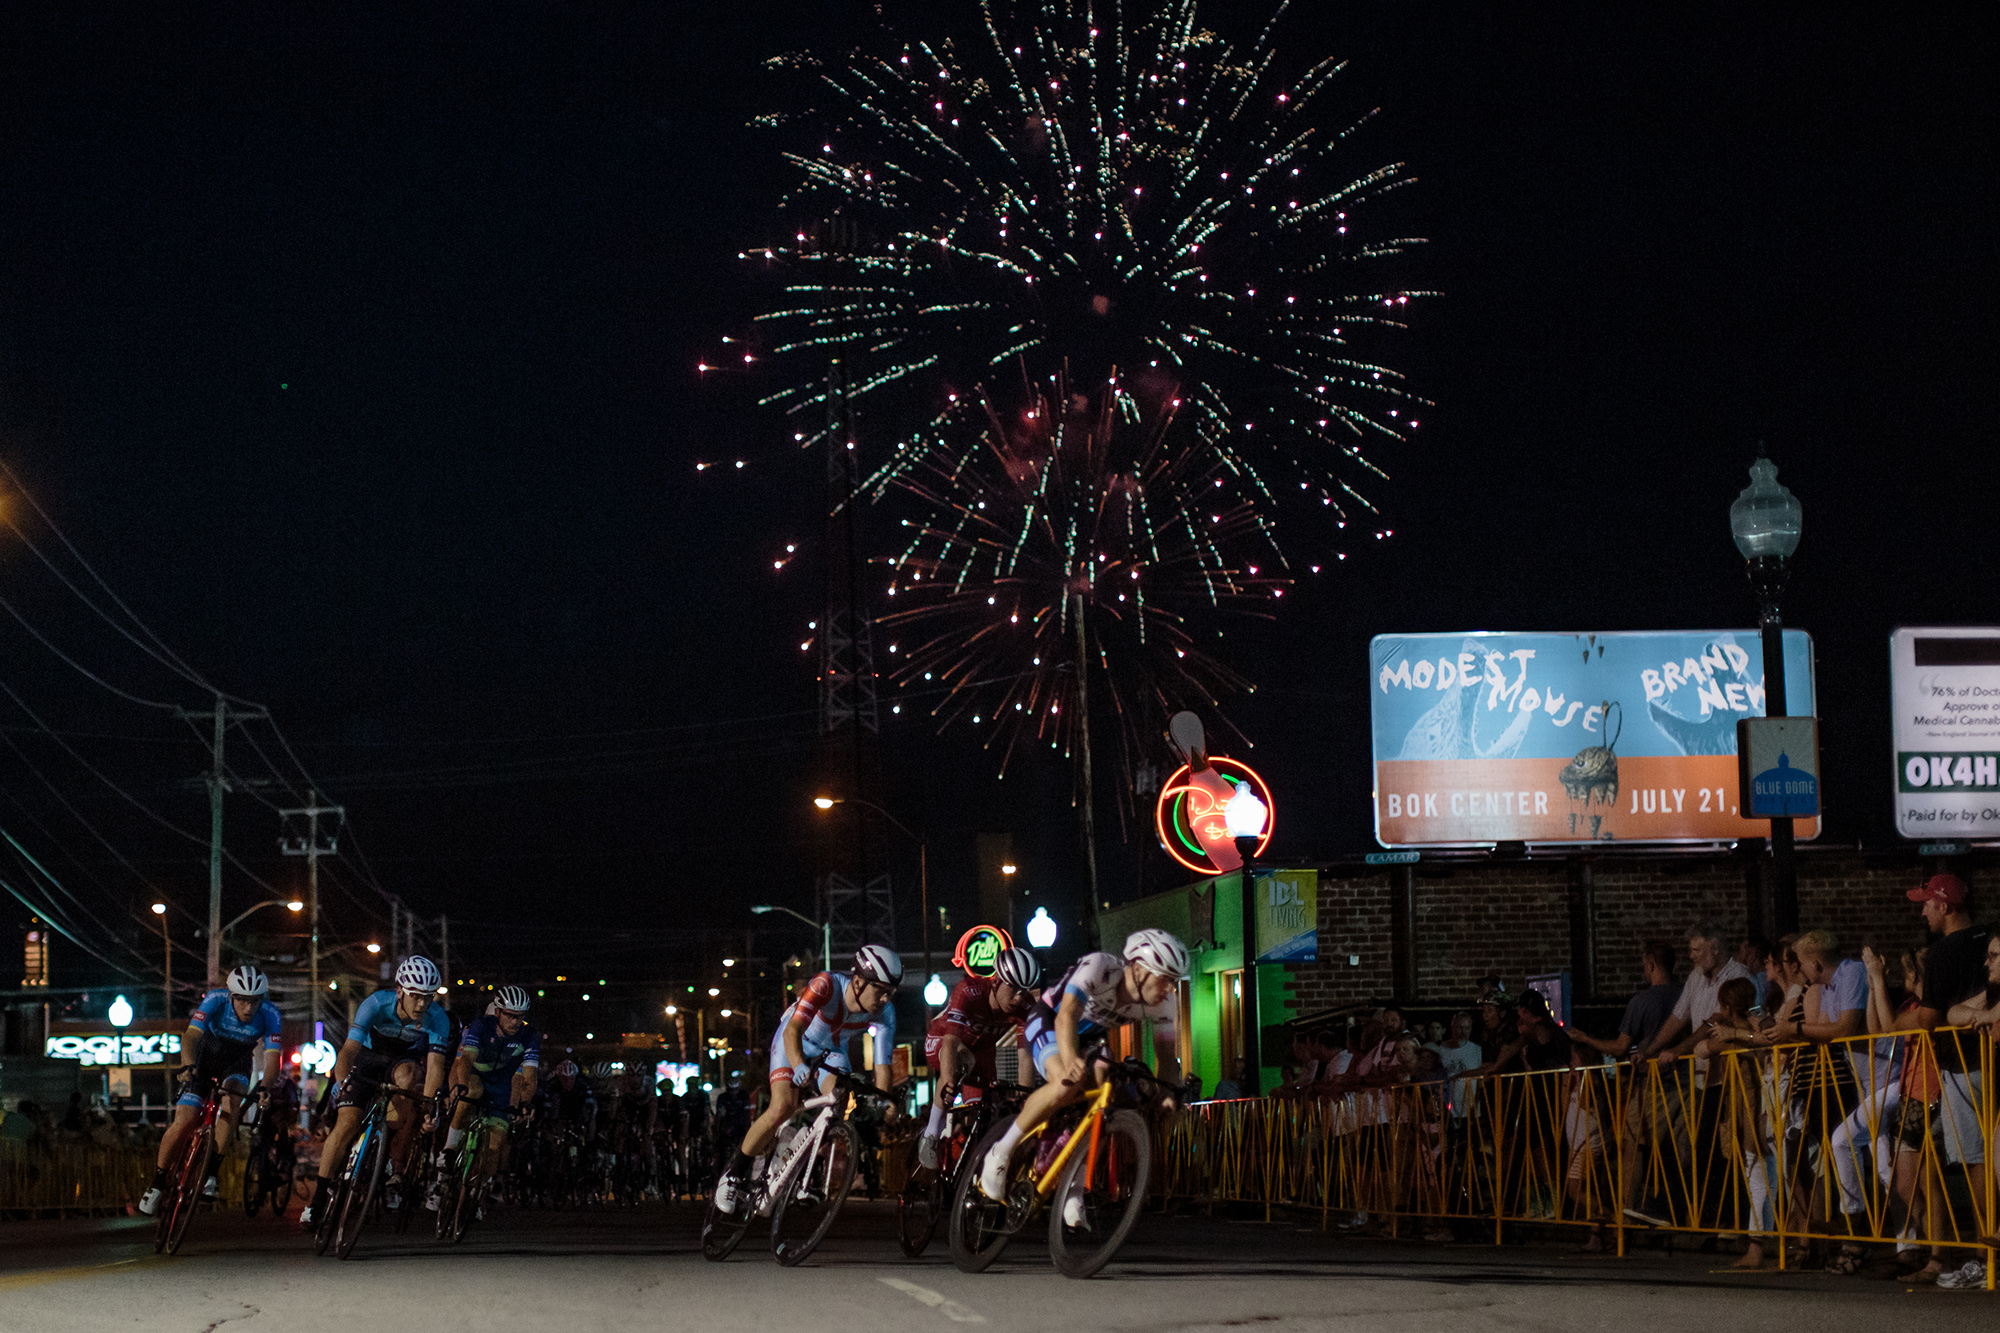 The city of Tulsa, Oklahoma, has rallied behind the Tulsa Tough, including gran fondo events on consecutive weekend days. Photo: Bo Bickerstaff.